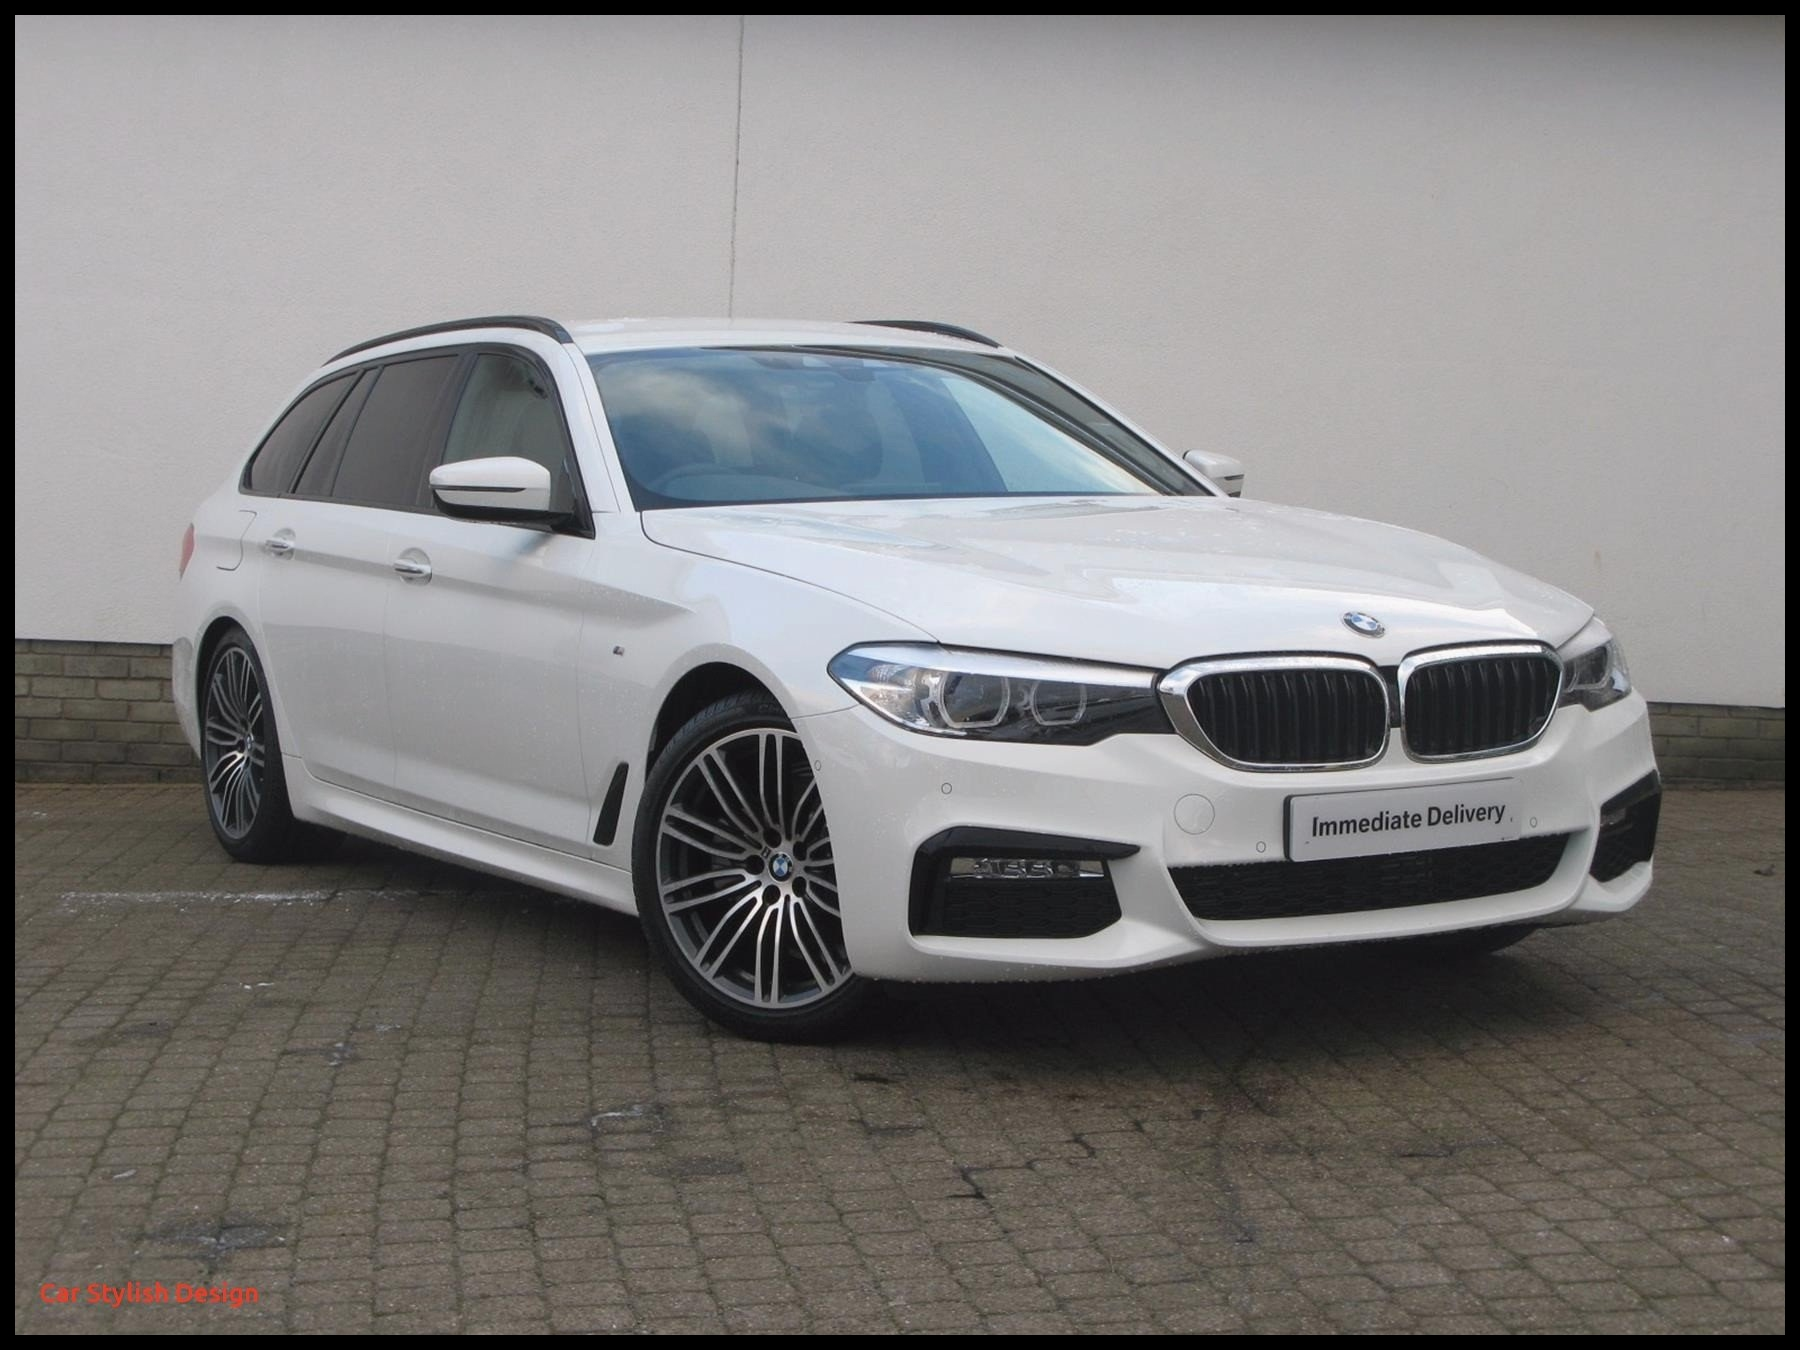 2018 Bmw 550i Review 2018 Bmw 550i First Drive Prices Reviews and 2018